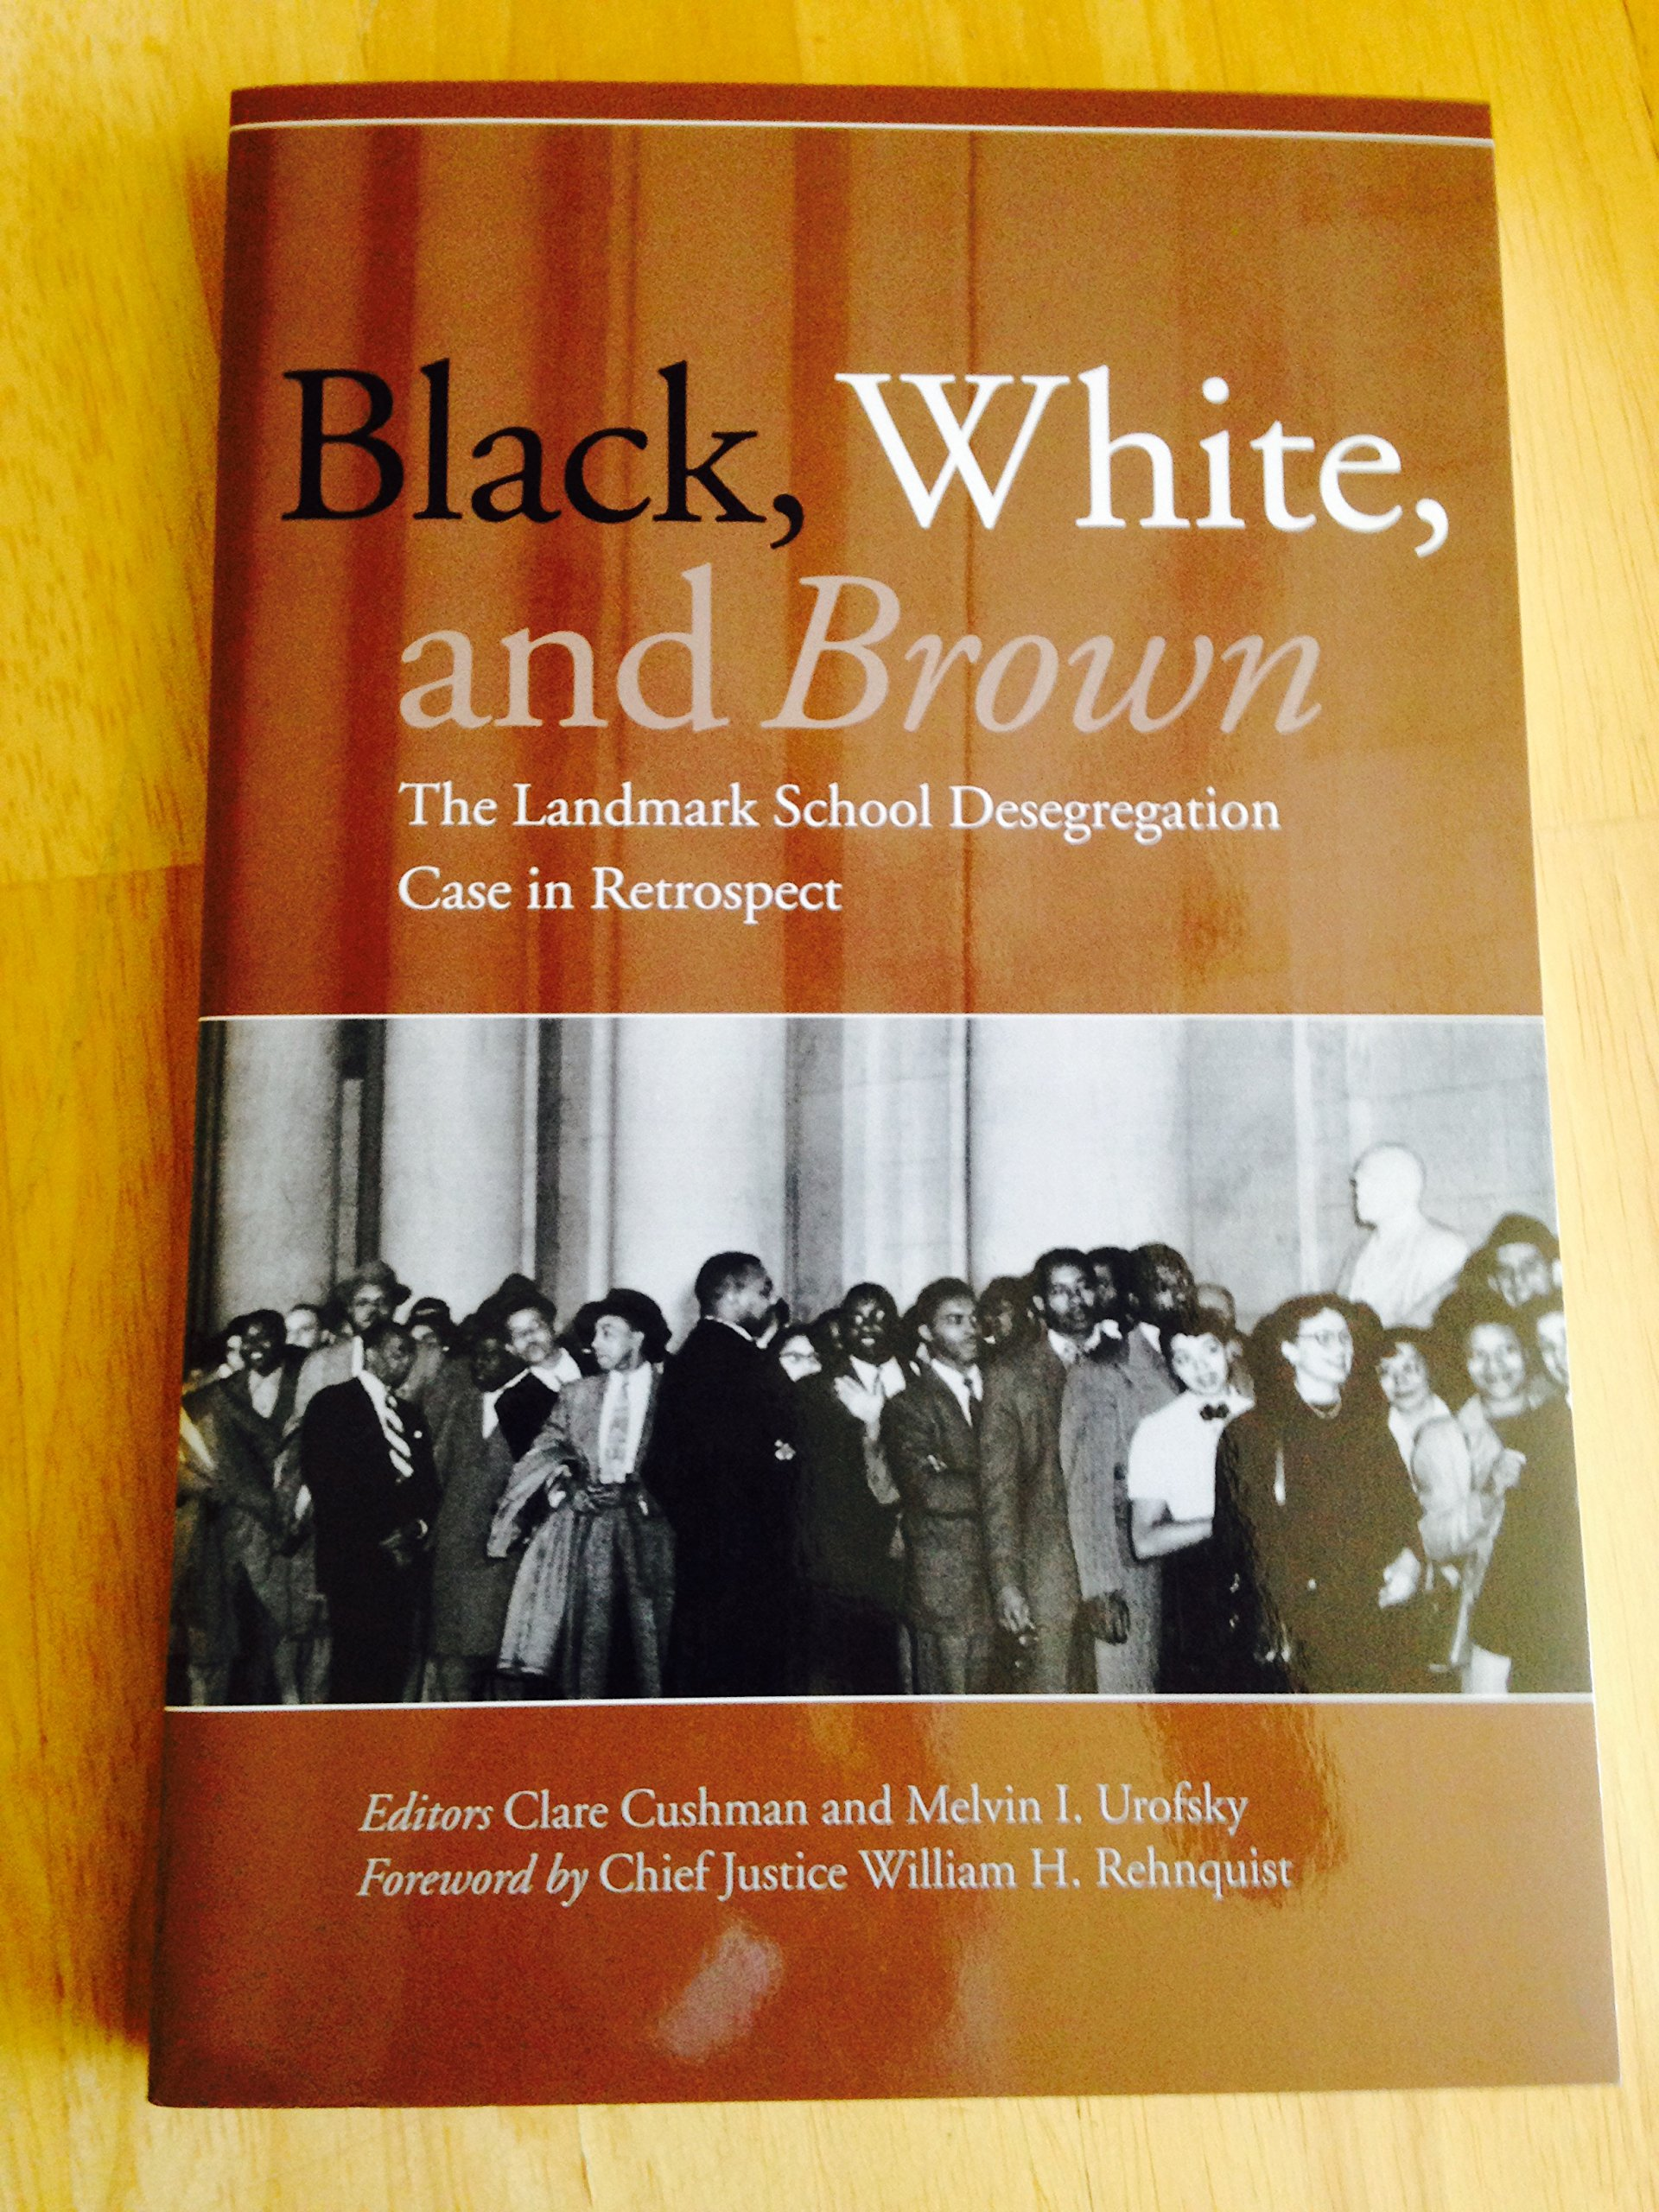 Black, White, and Brown: The Landmark School Desegregation Case in Retrospect